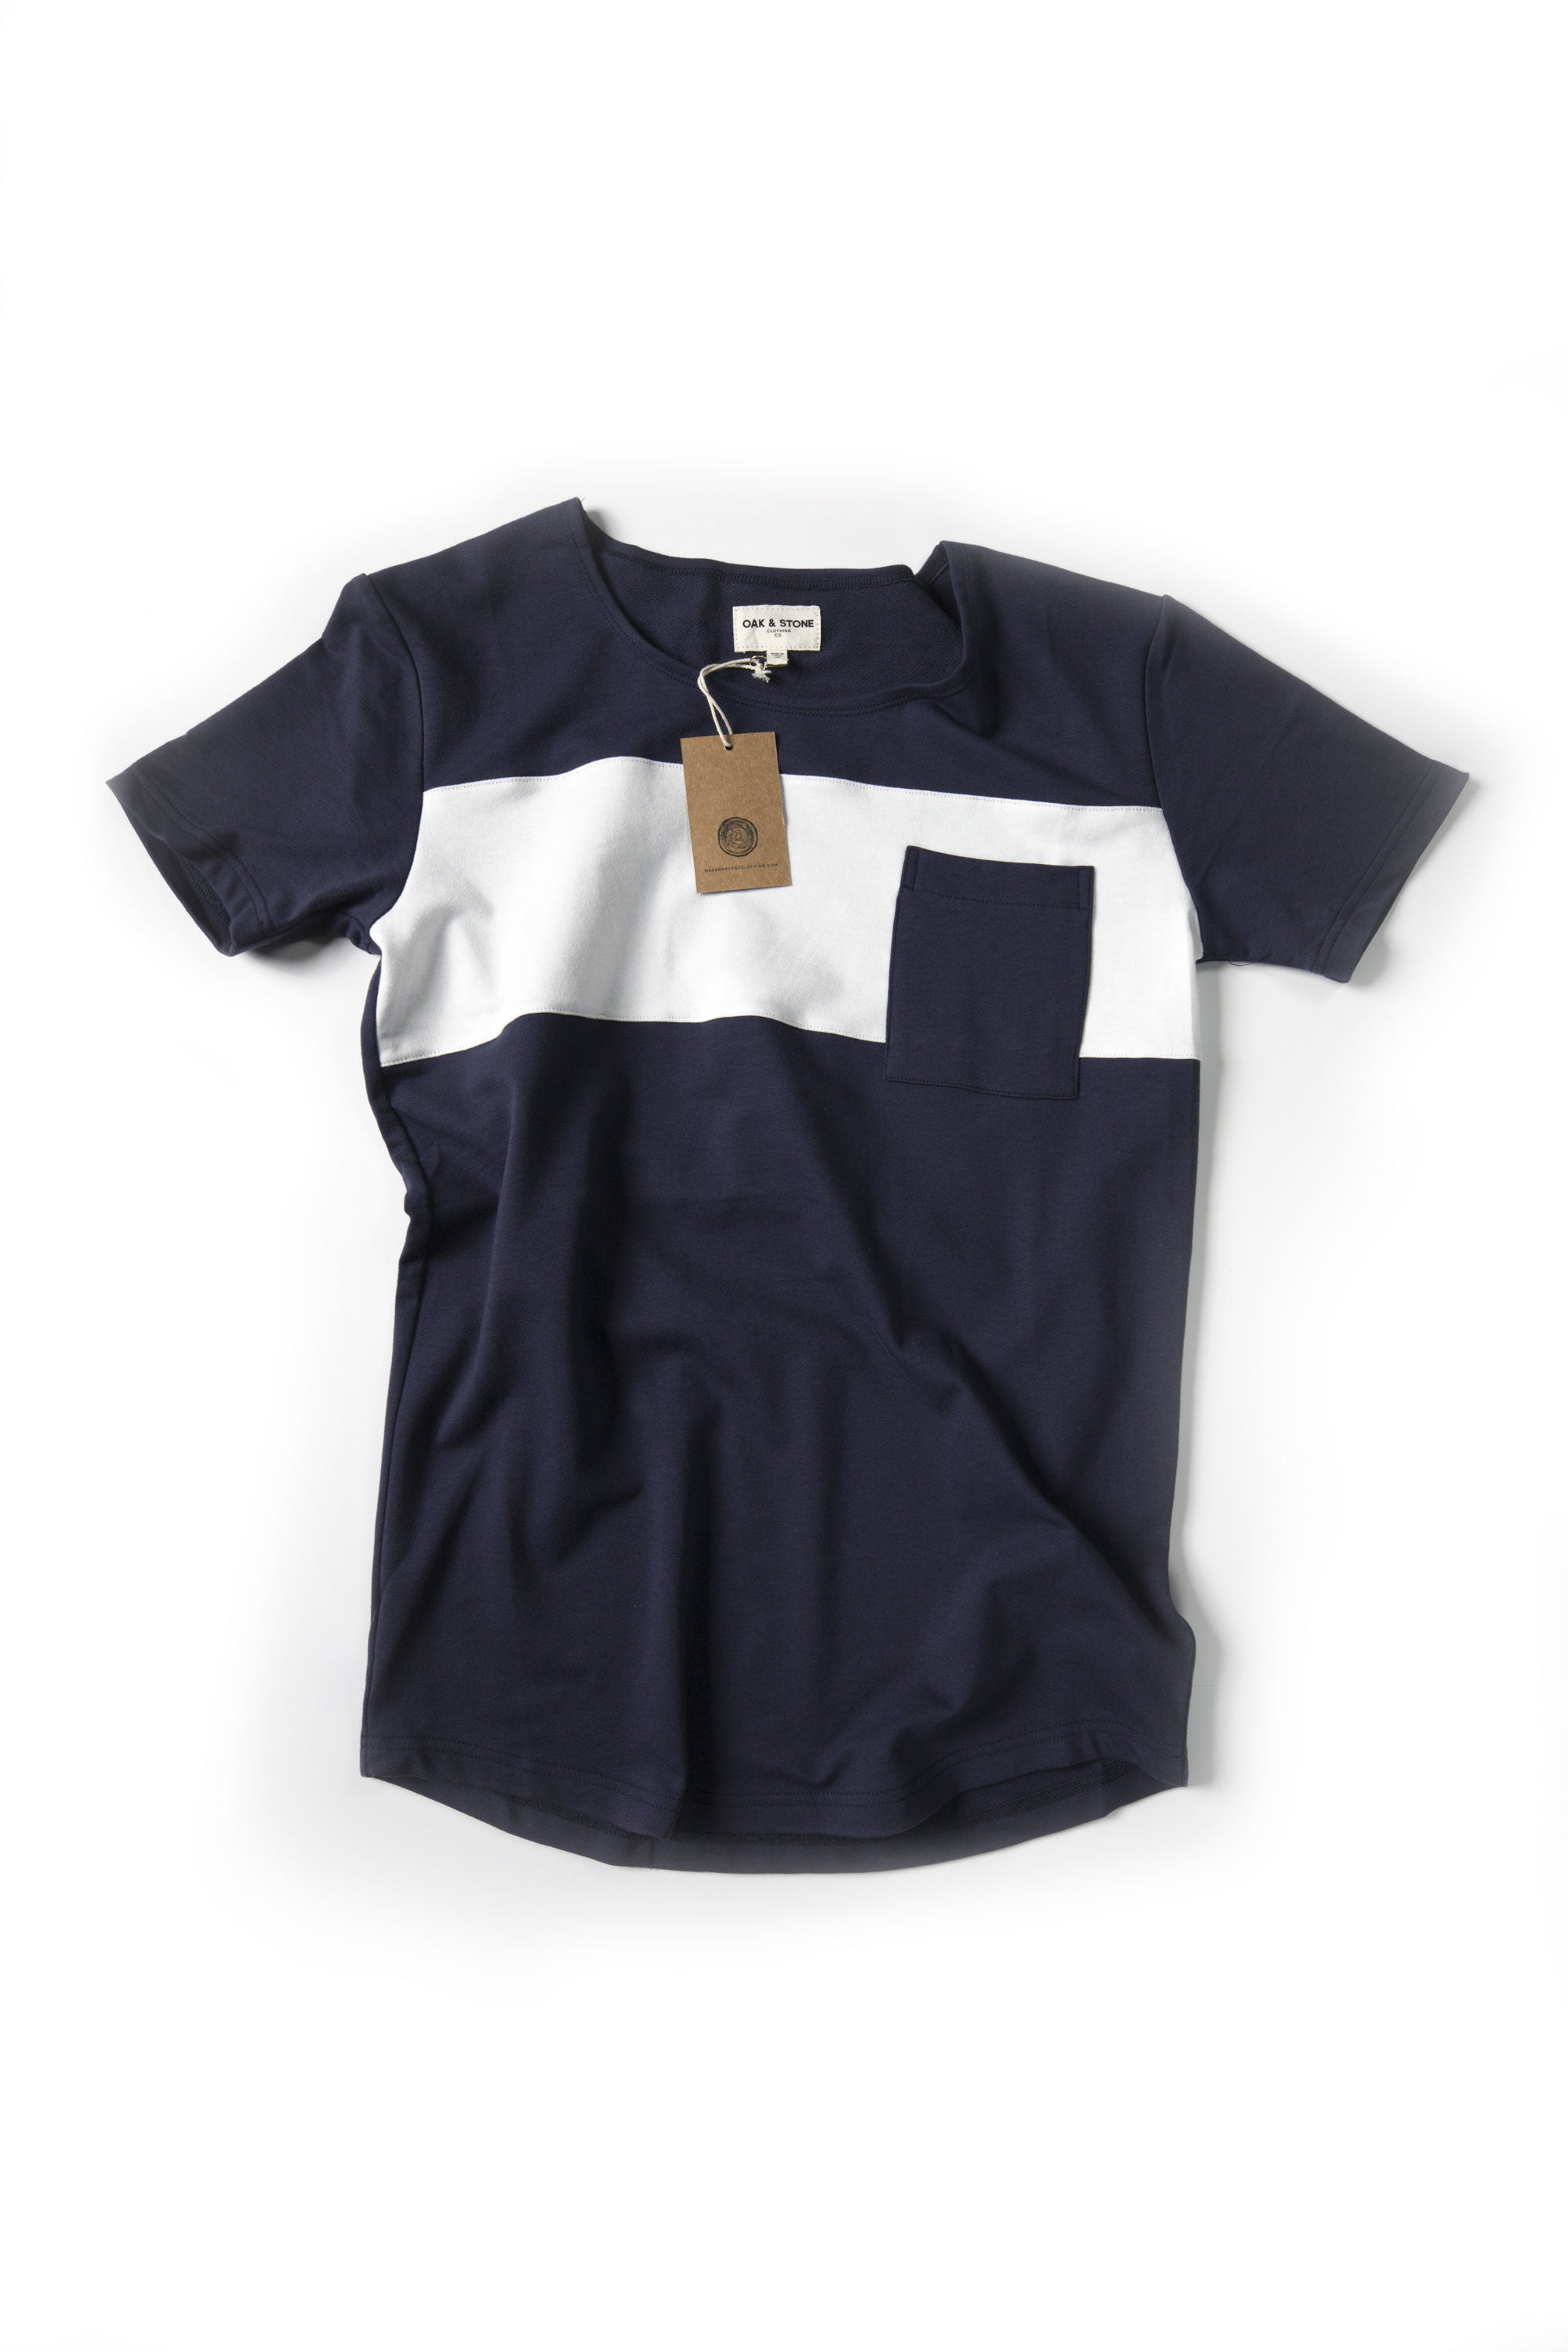 Bar Pocket Tee - Blue - Oak & Stone Clothing Co.